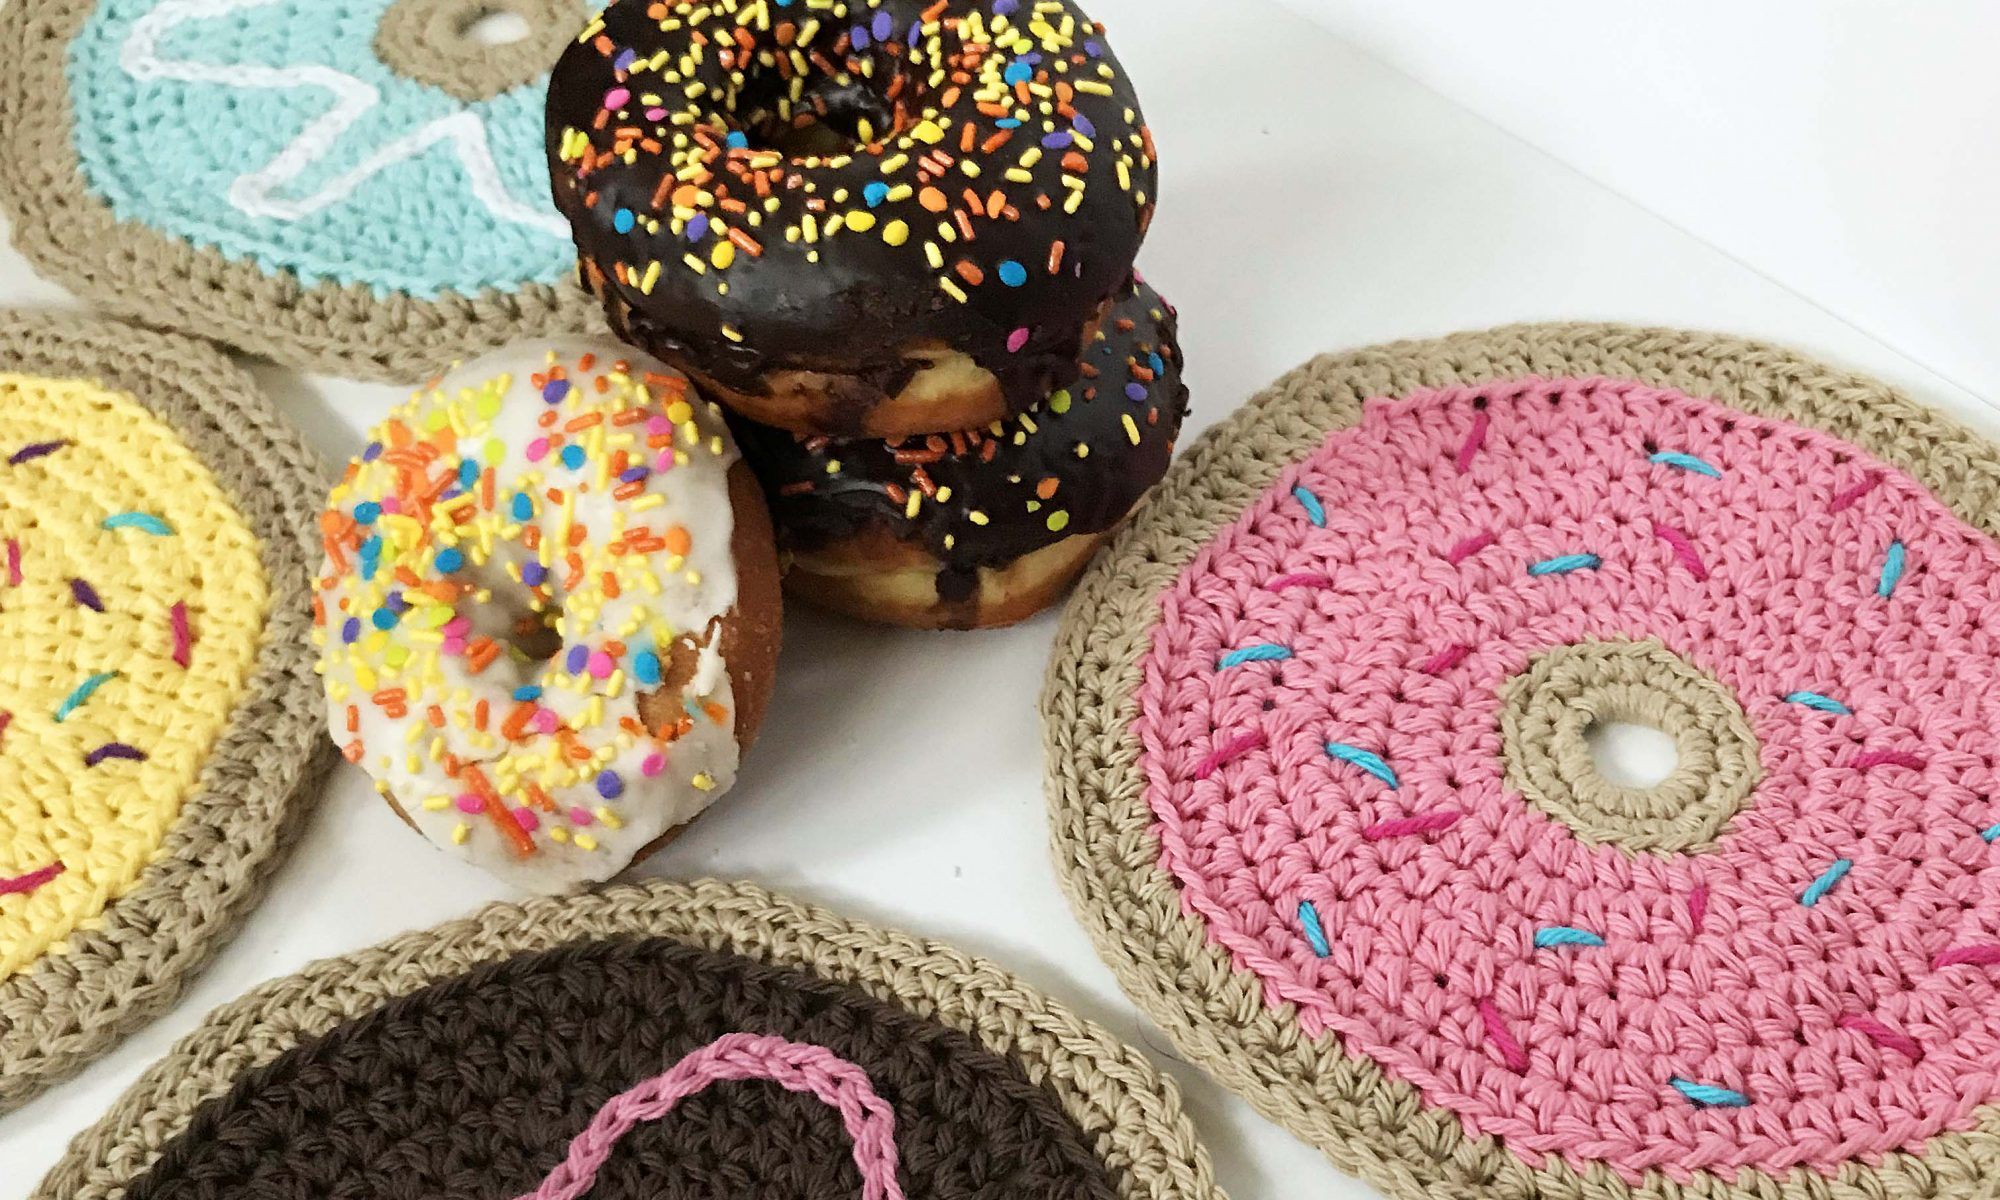 Quick and Simple Dish Cloth Crochet Pattern Donut Dish Cloth Free Crochet Pattern Green Fox Farms Designs